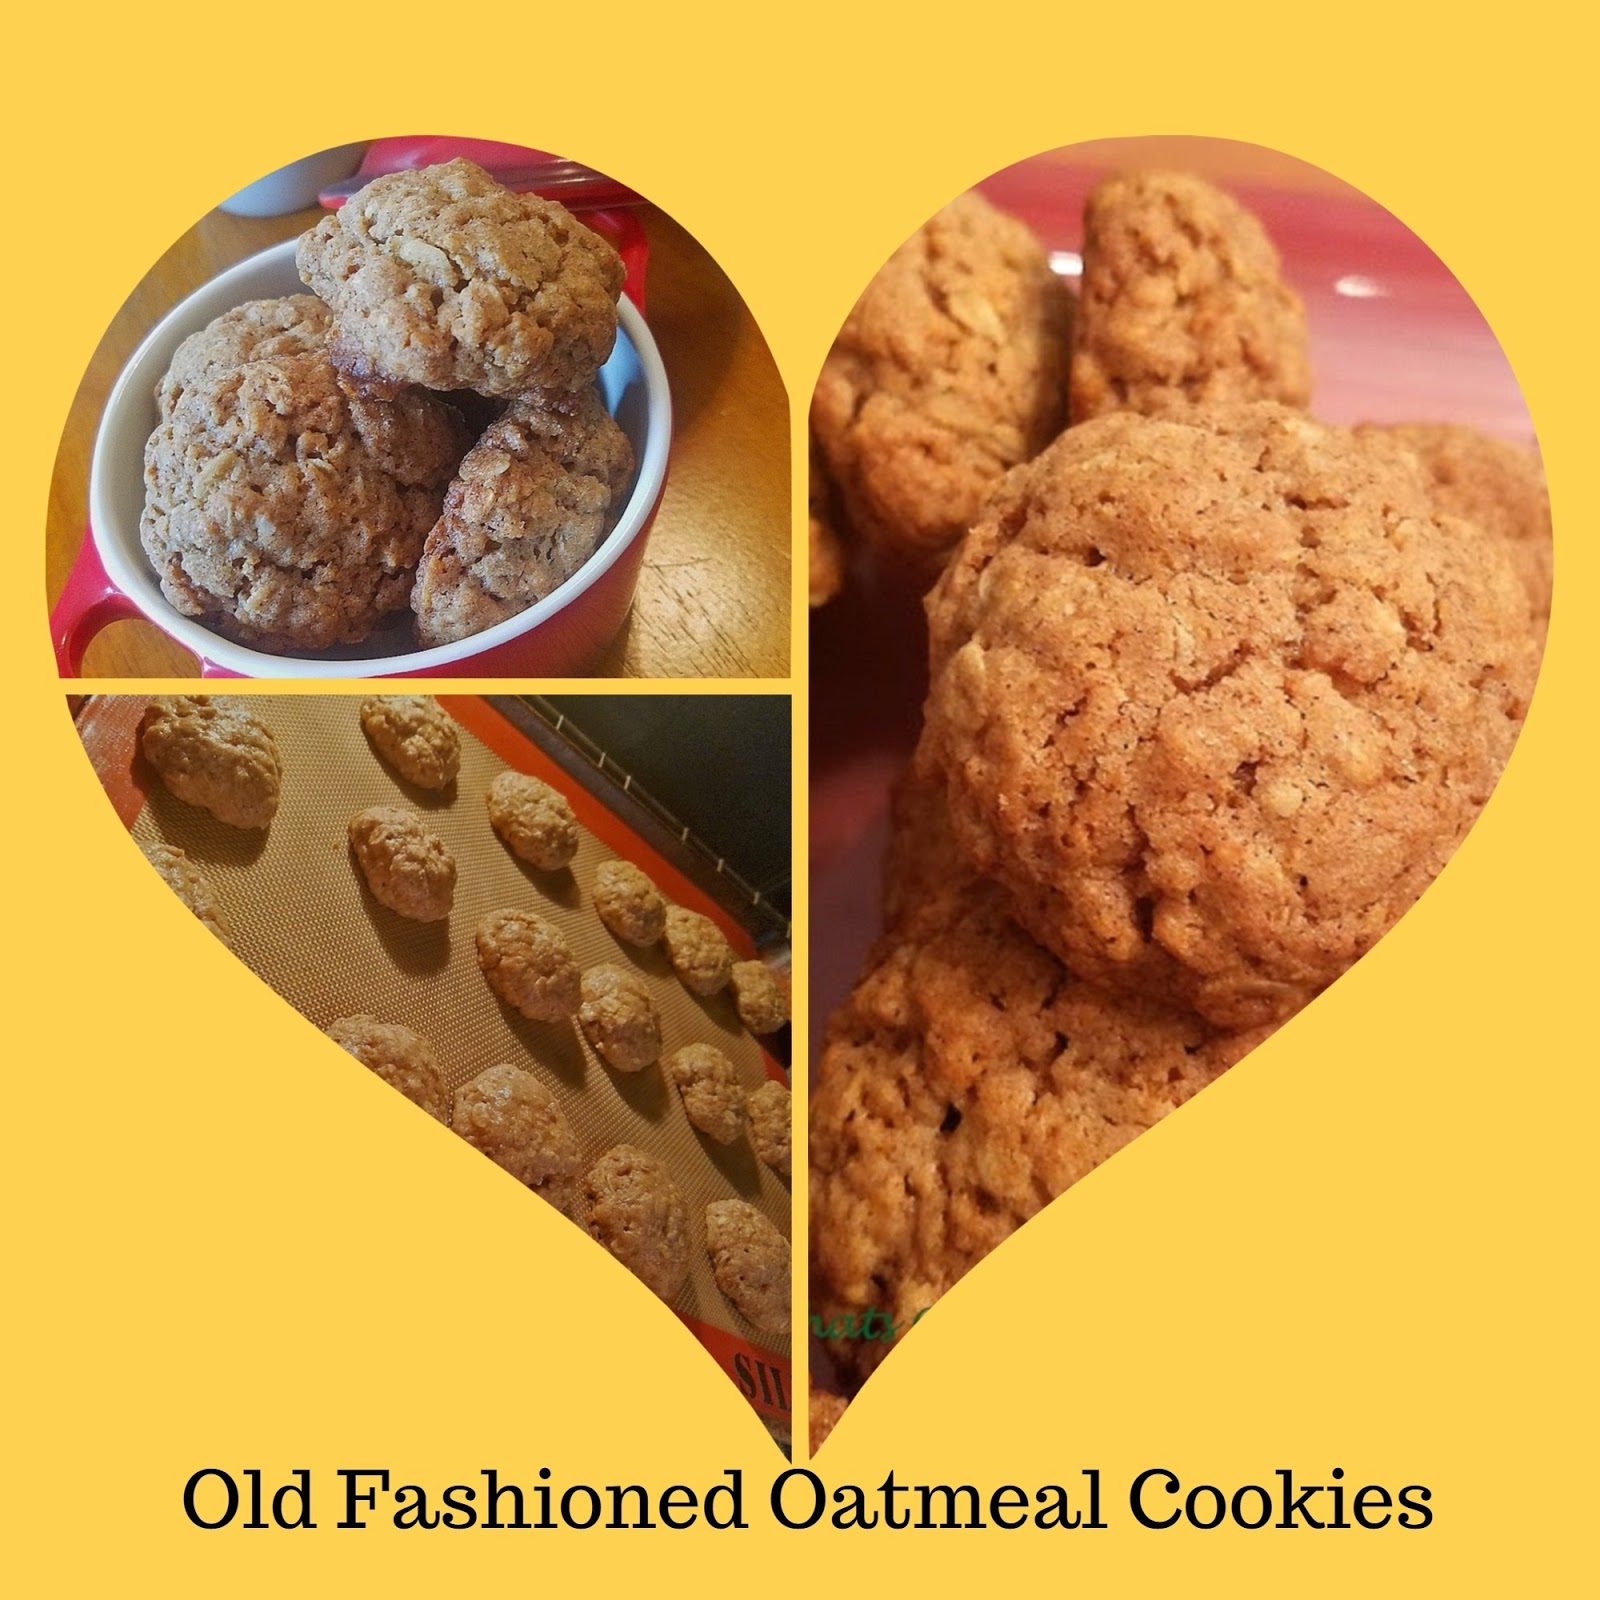 A collage of old fashioned oatmeal cookies in a heart shape with bird design coffee cup and a cookie sheet of oatmeal cookies cooling